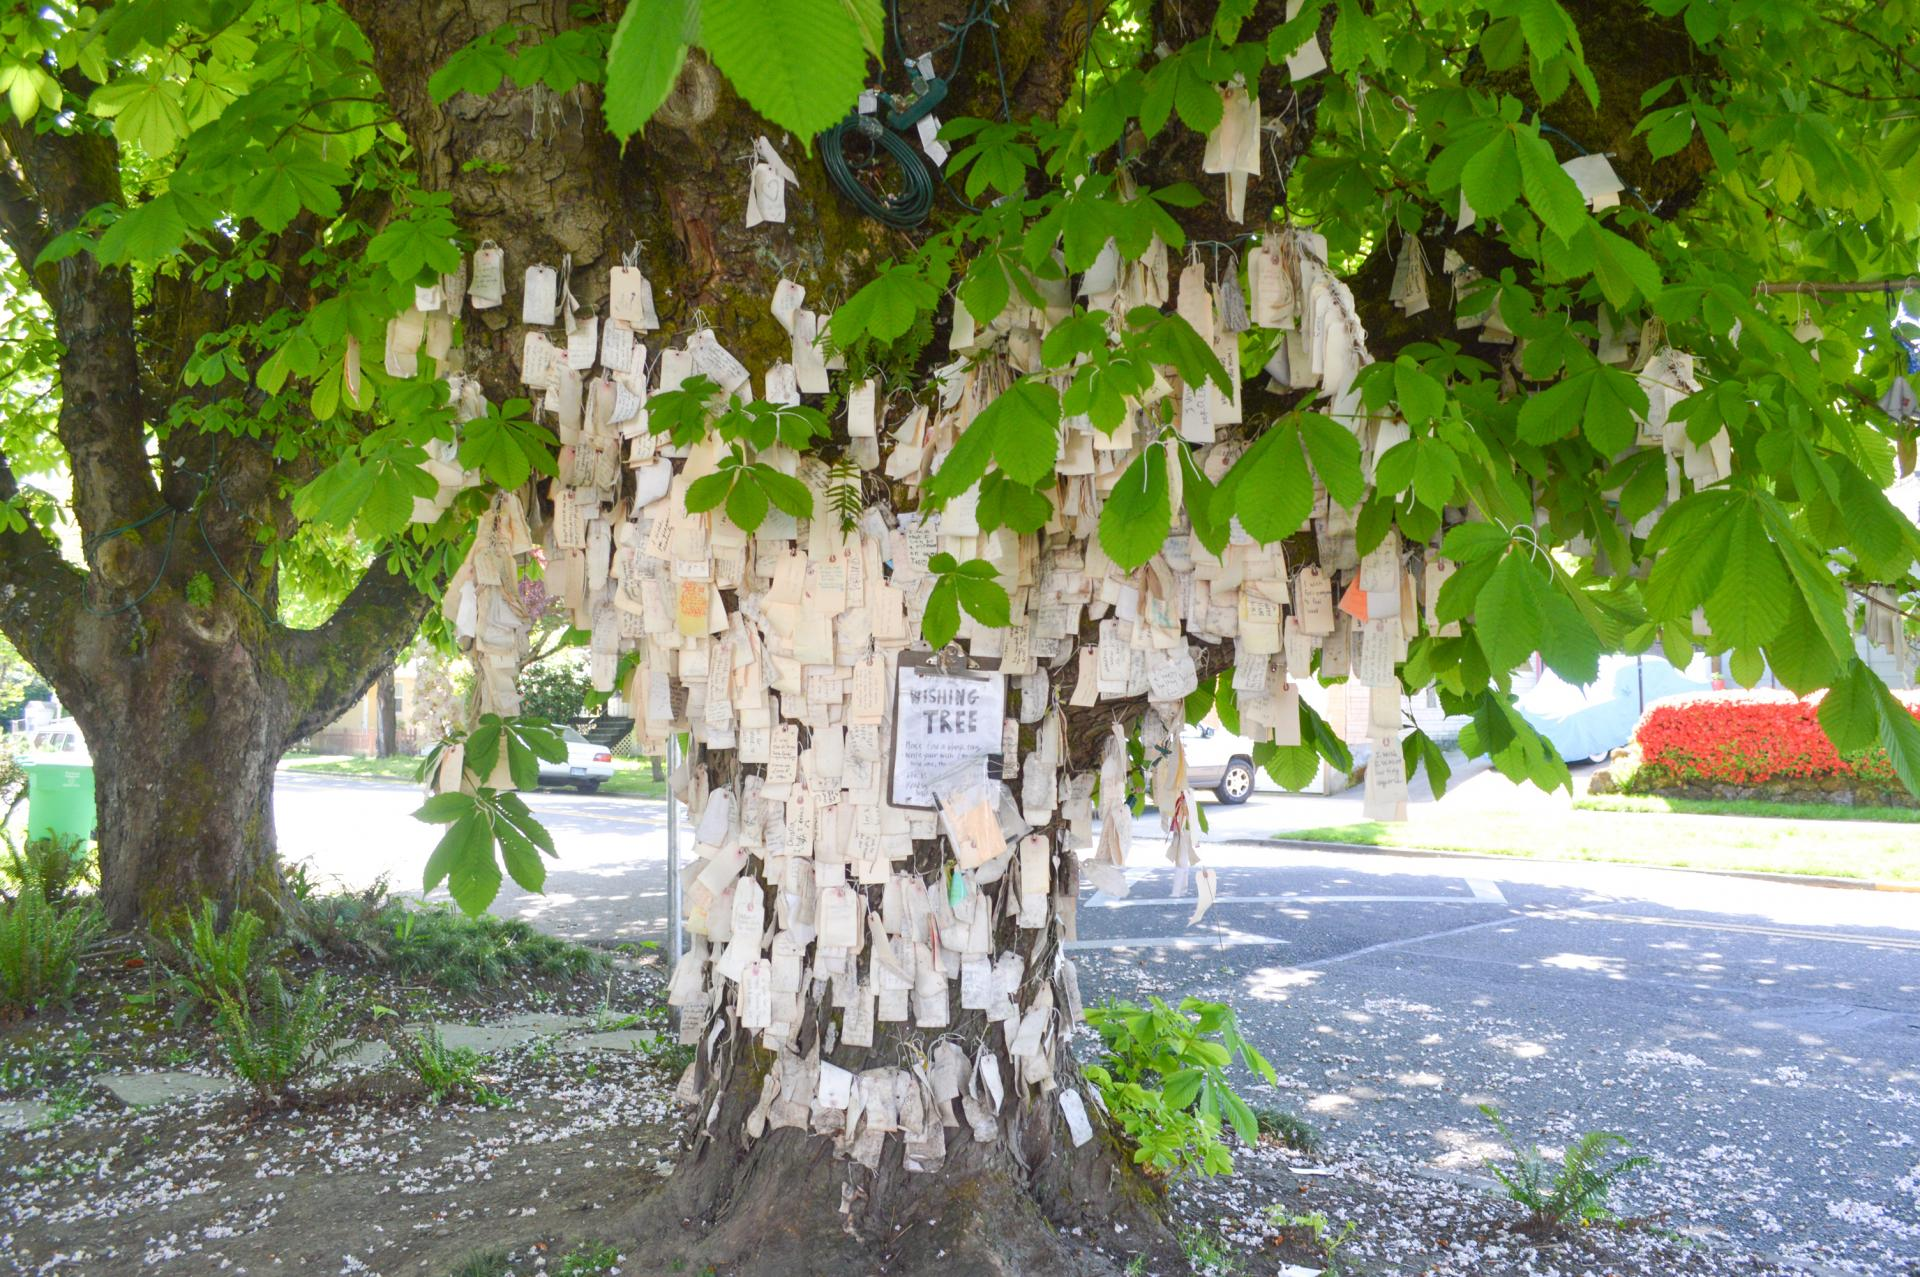 Portland Wishing Tree